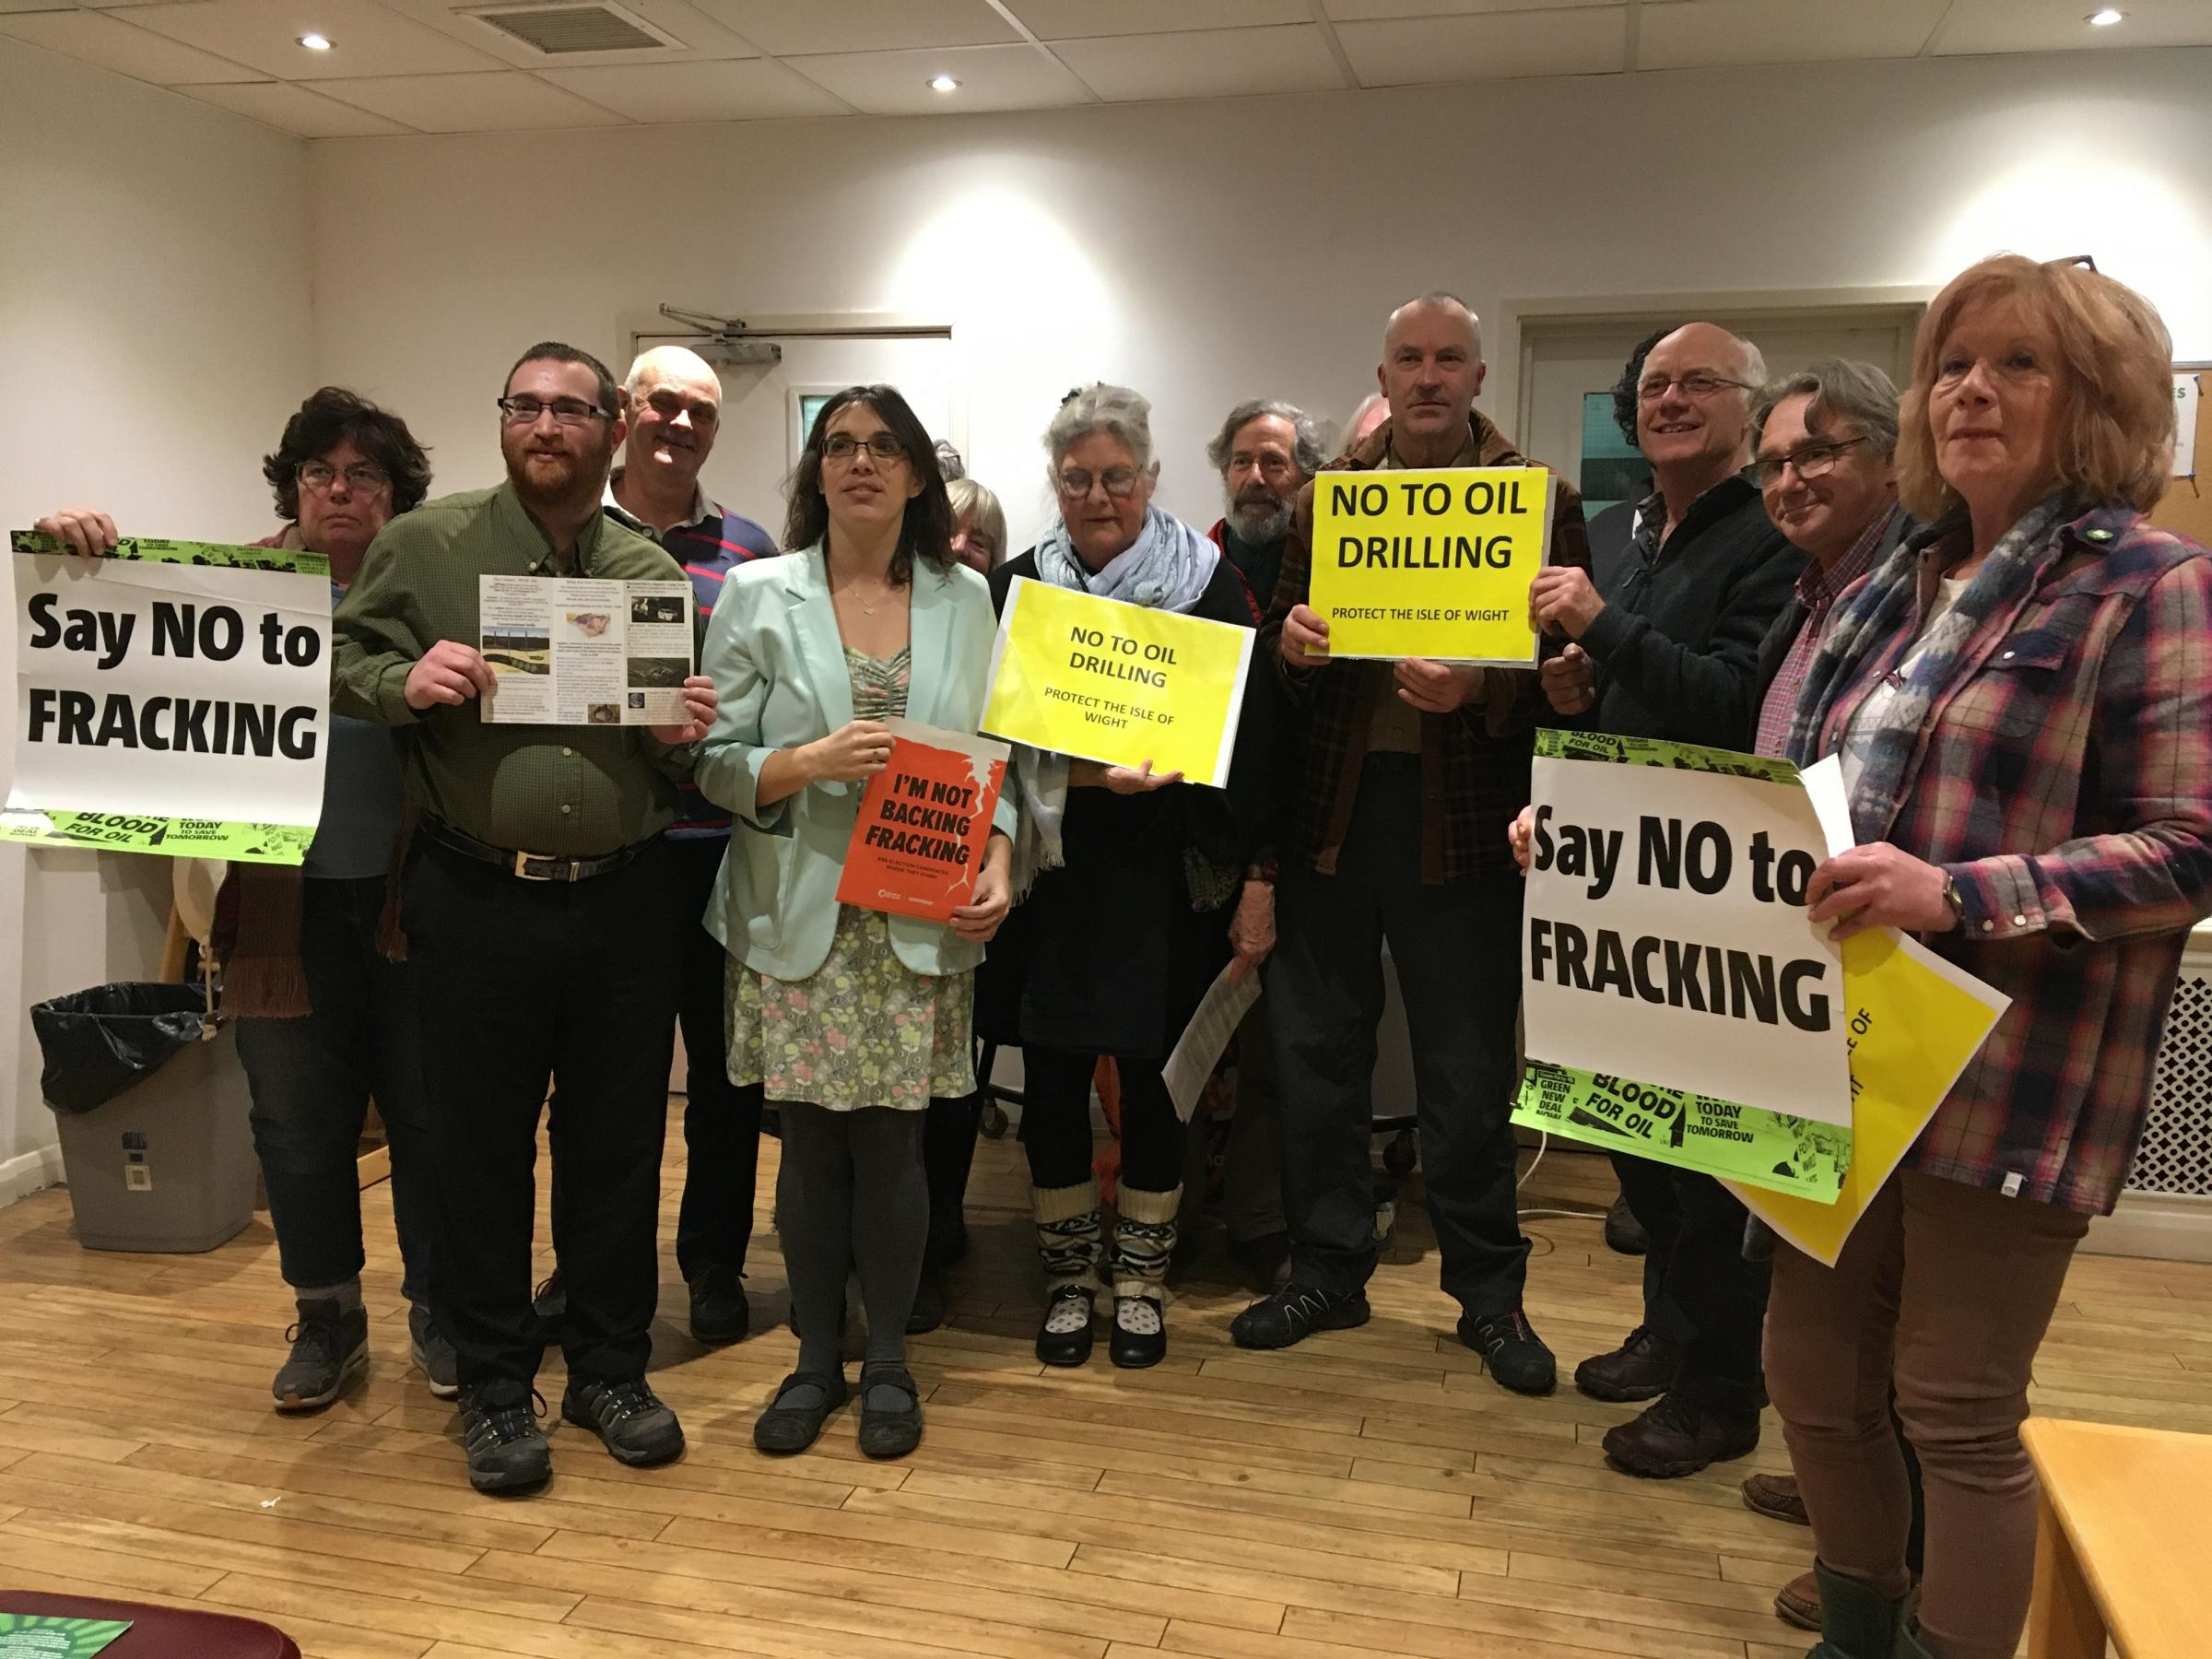 Protestors meet to plan protest against drilling for oil on the Isle of Wight